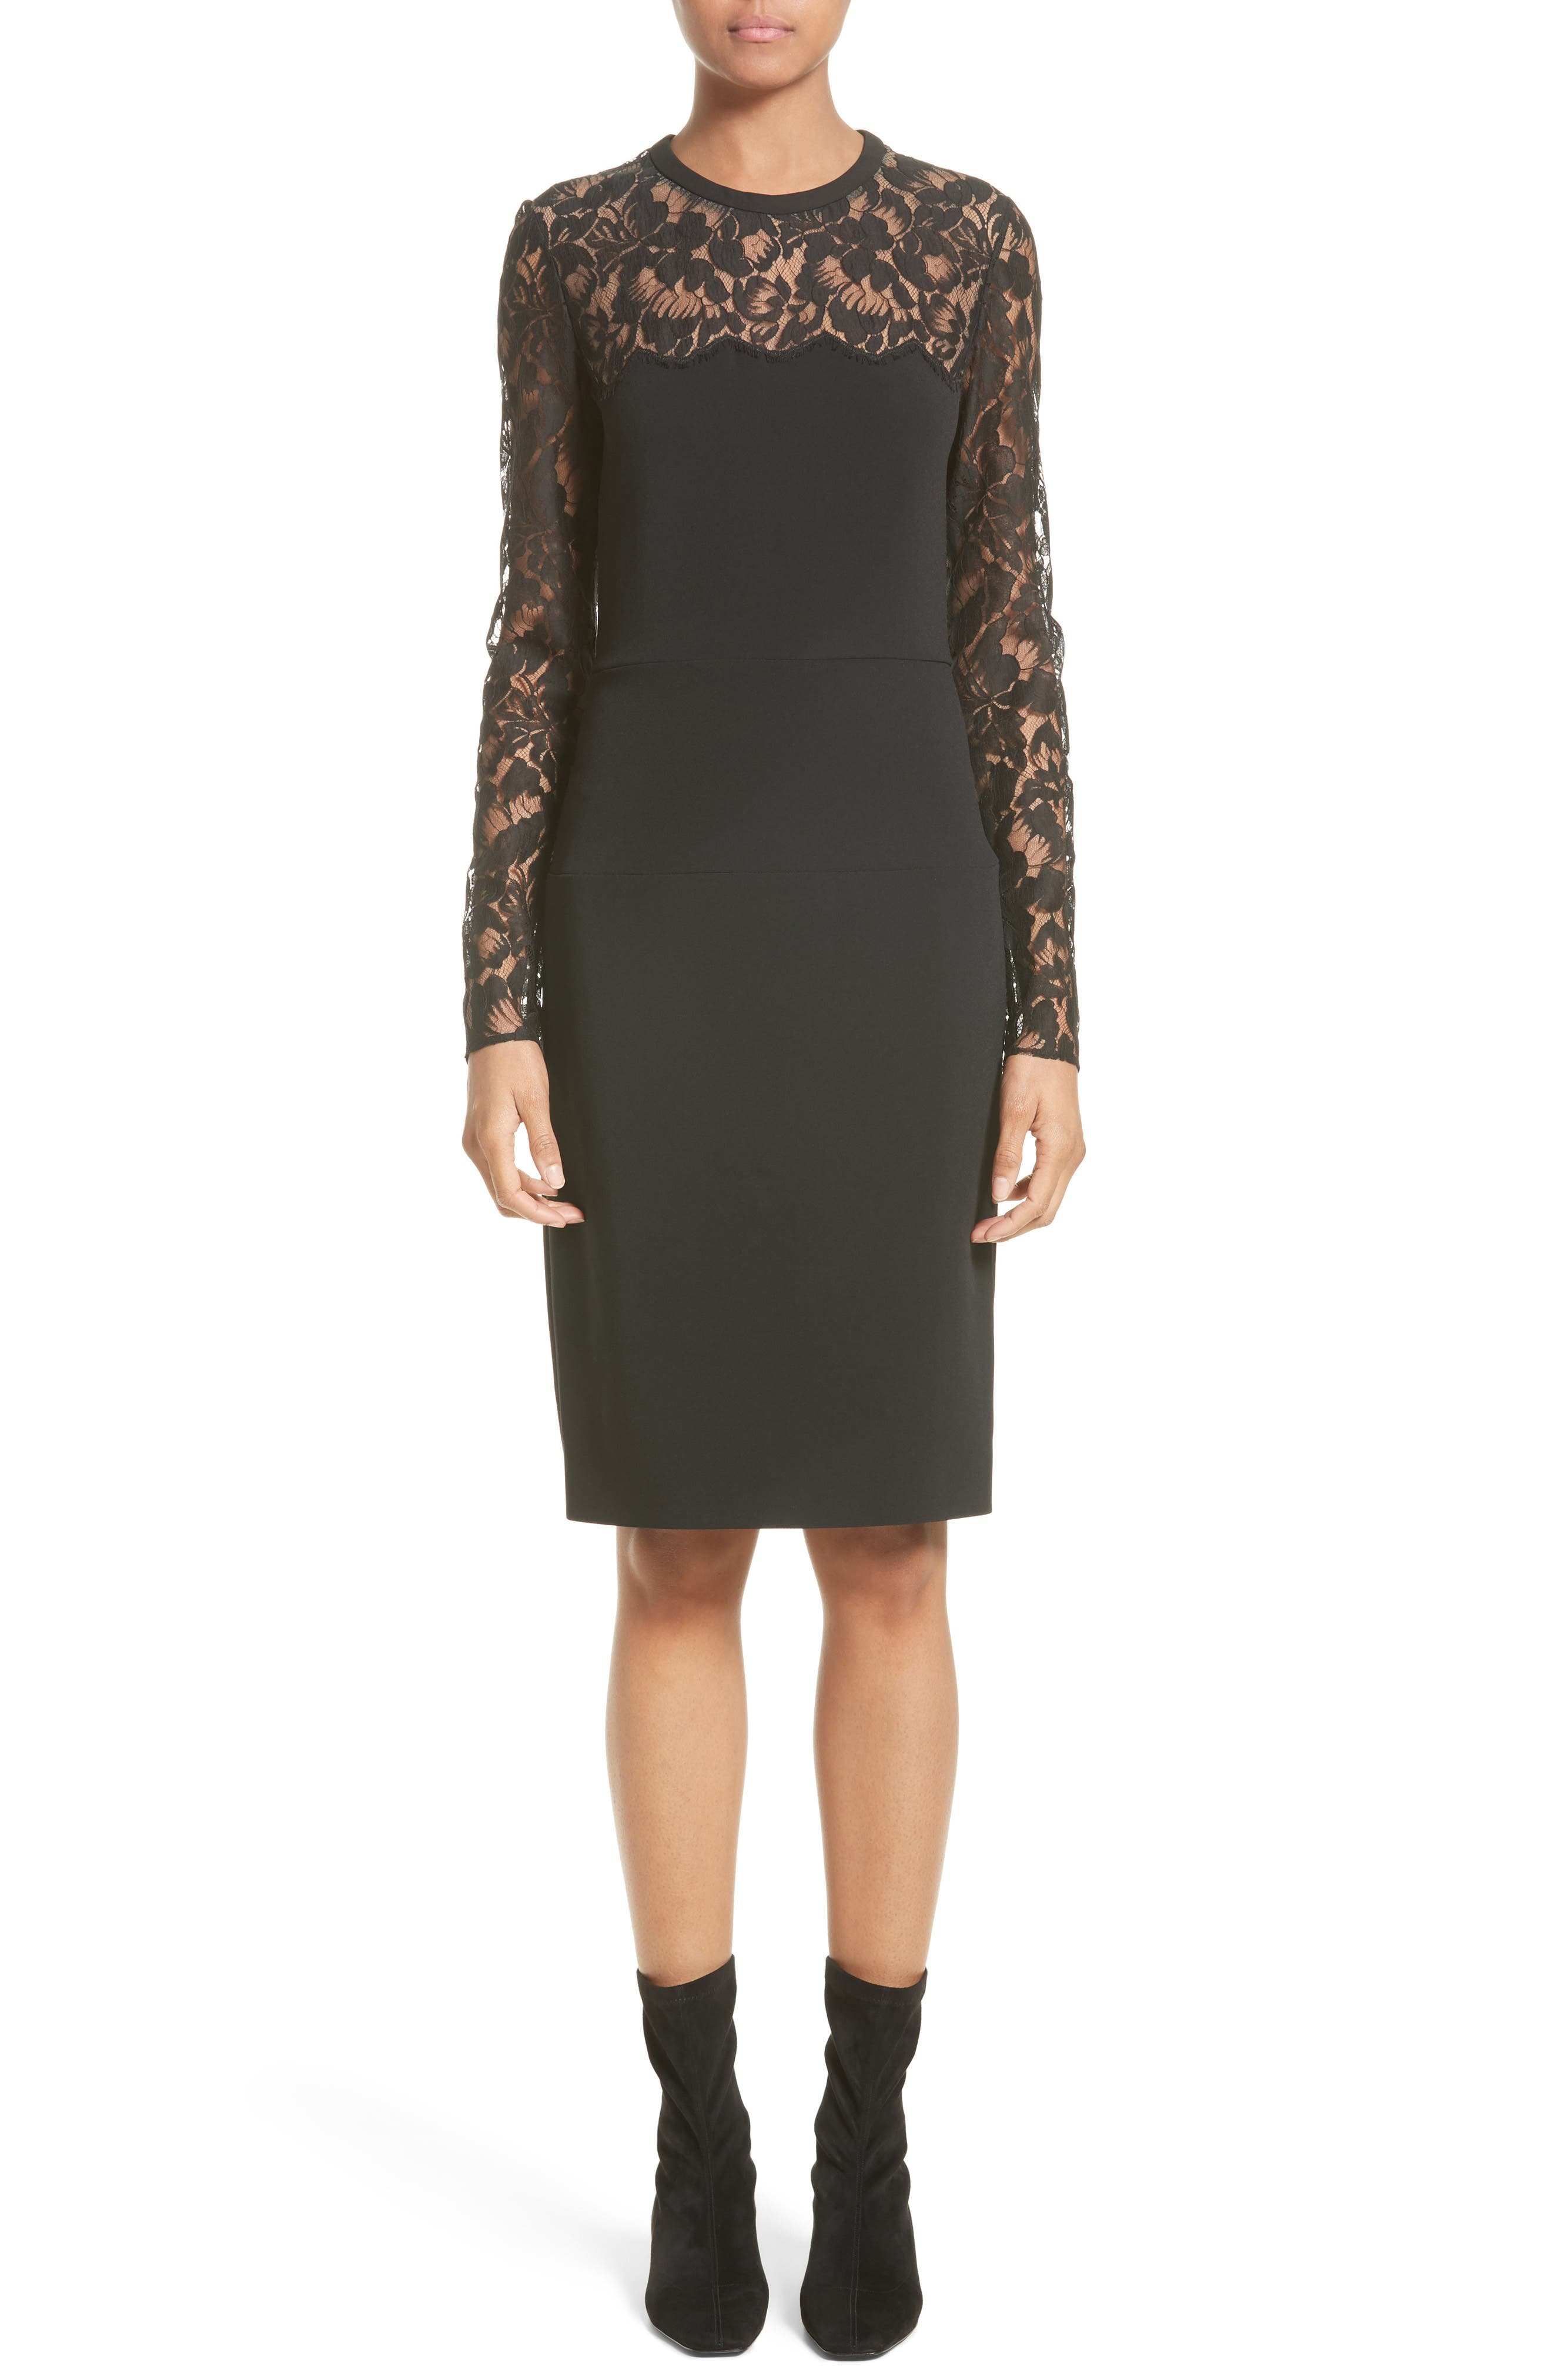 Stella McCartney Lace Illusion Sheath Dress